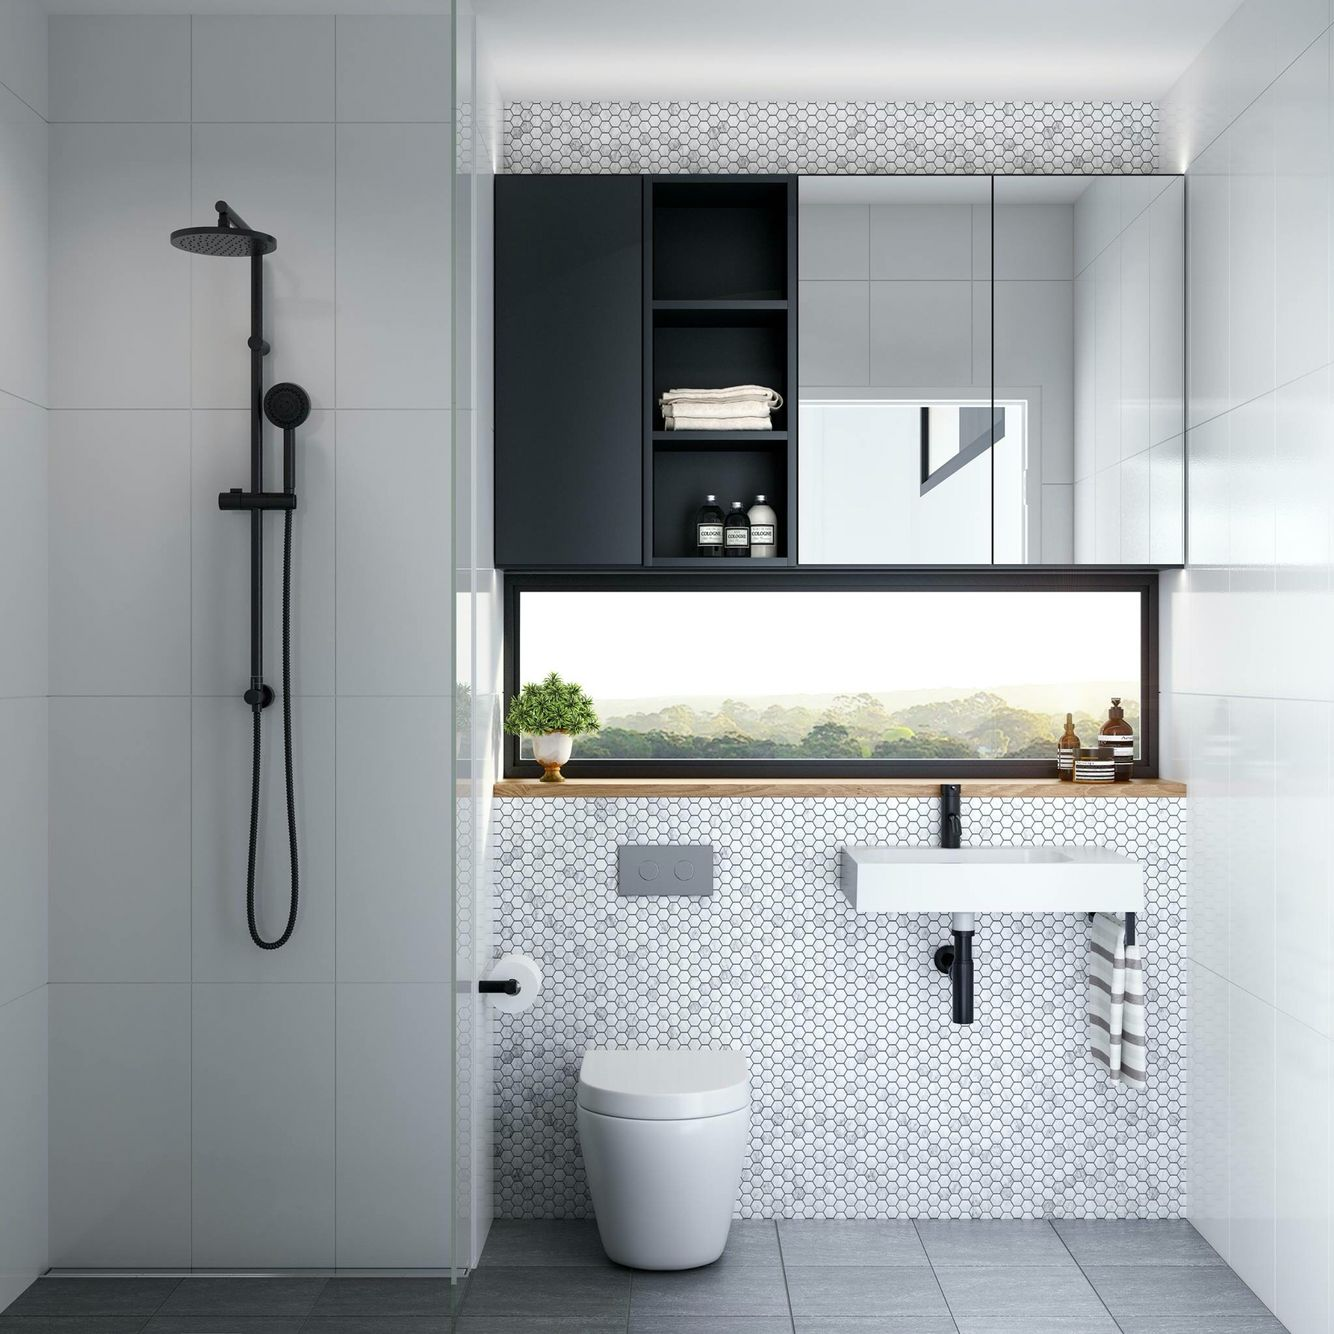 The 15 Most Beautiful Bathrooms On Pinterest: Macselective